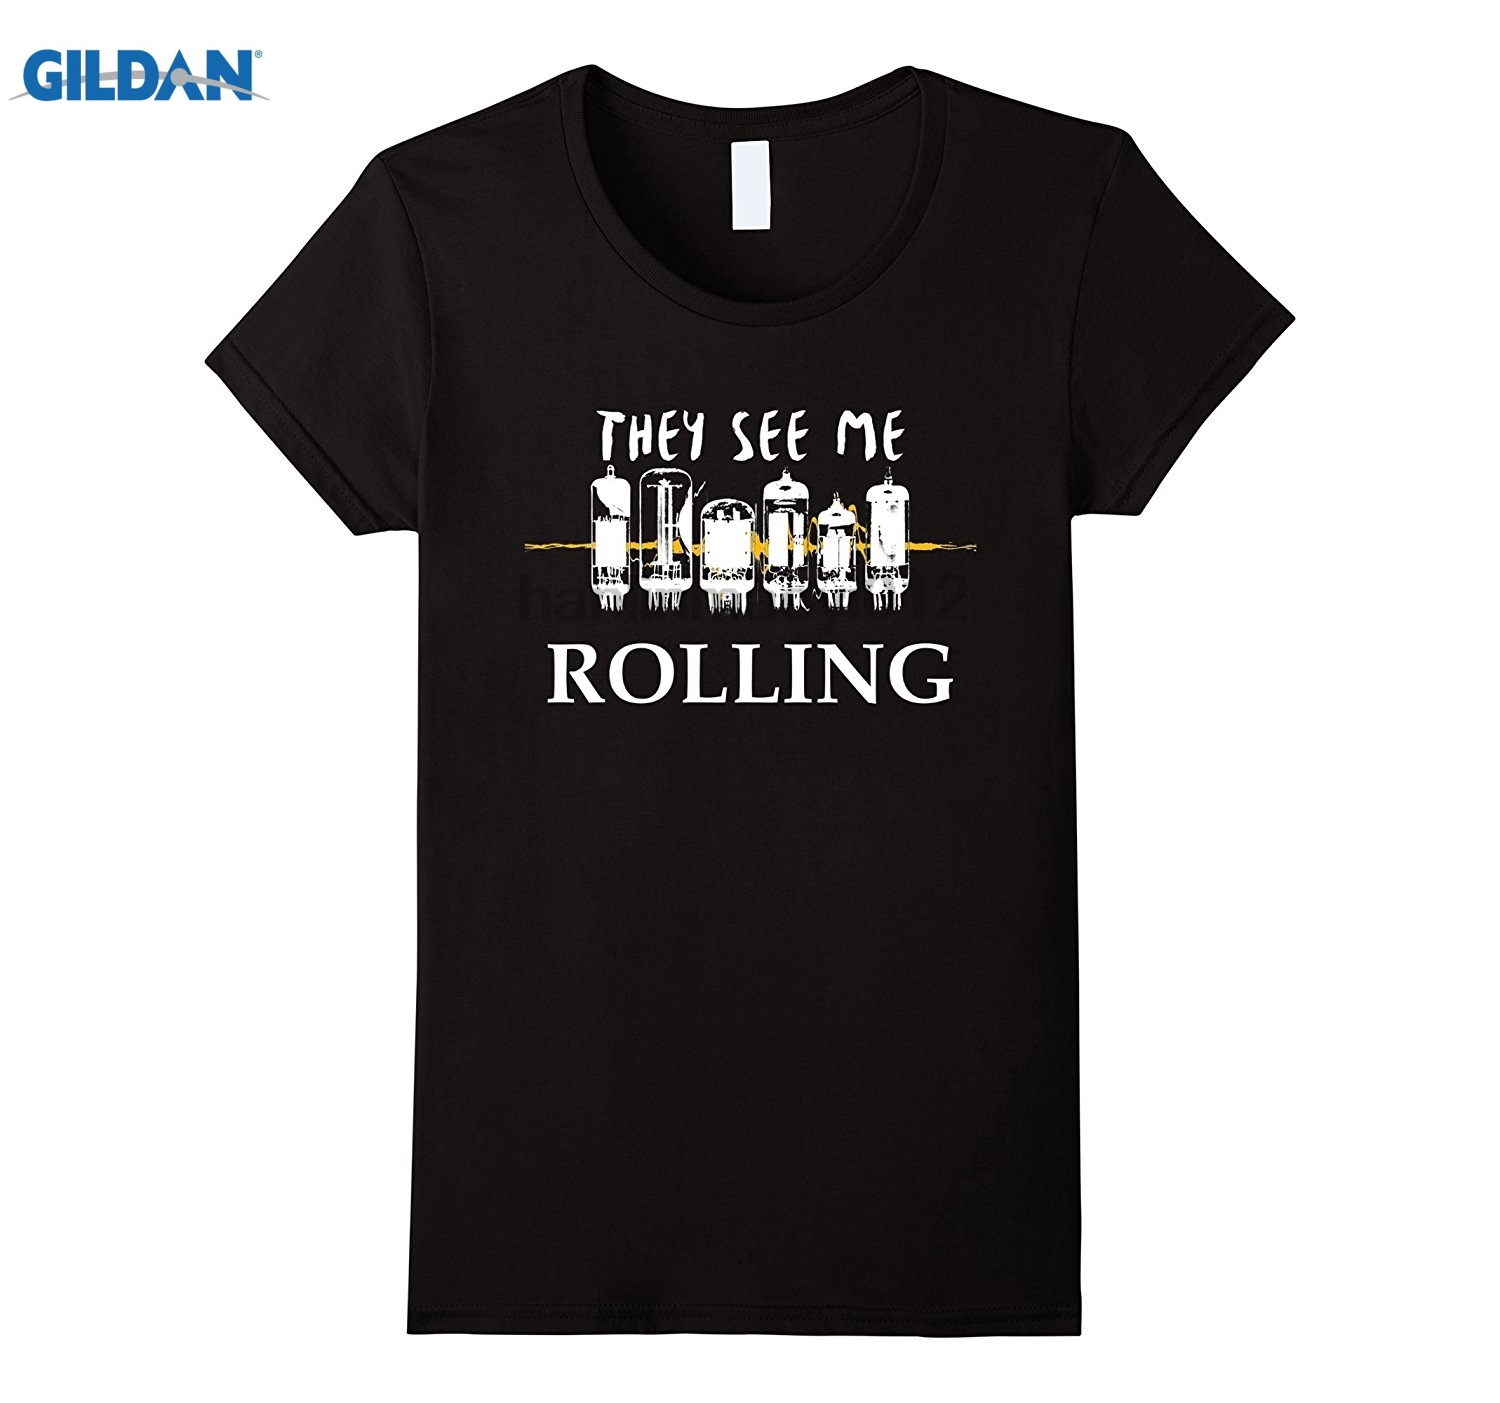 GILDAN Tube Rolling - Audiophile Headphones Amp Hi-Fi T-shirt sunglasses women T-shirt ...